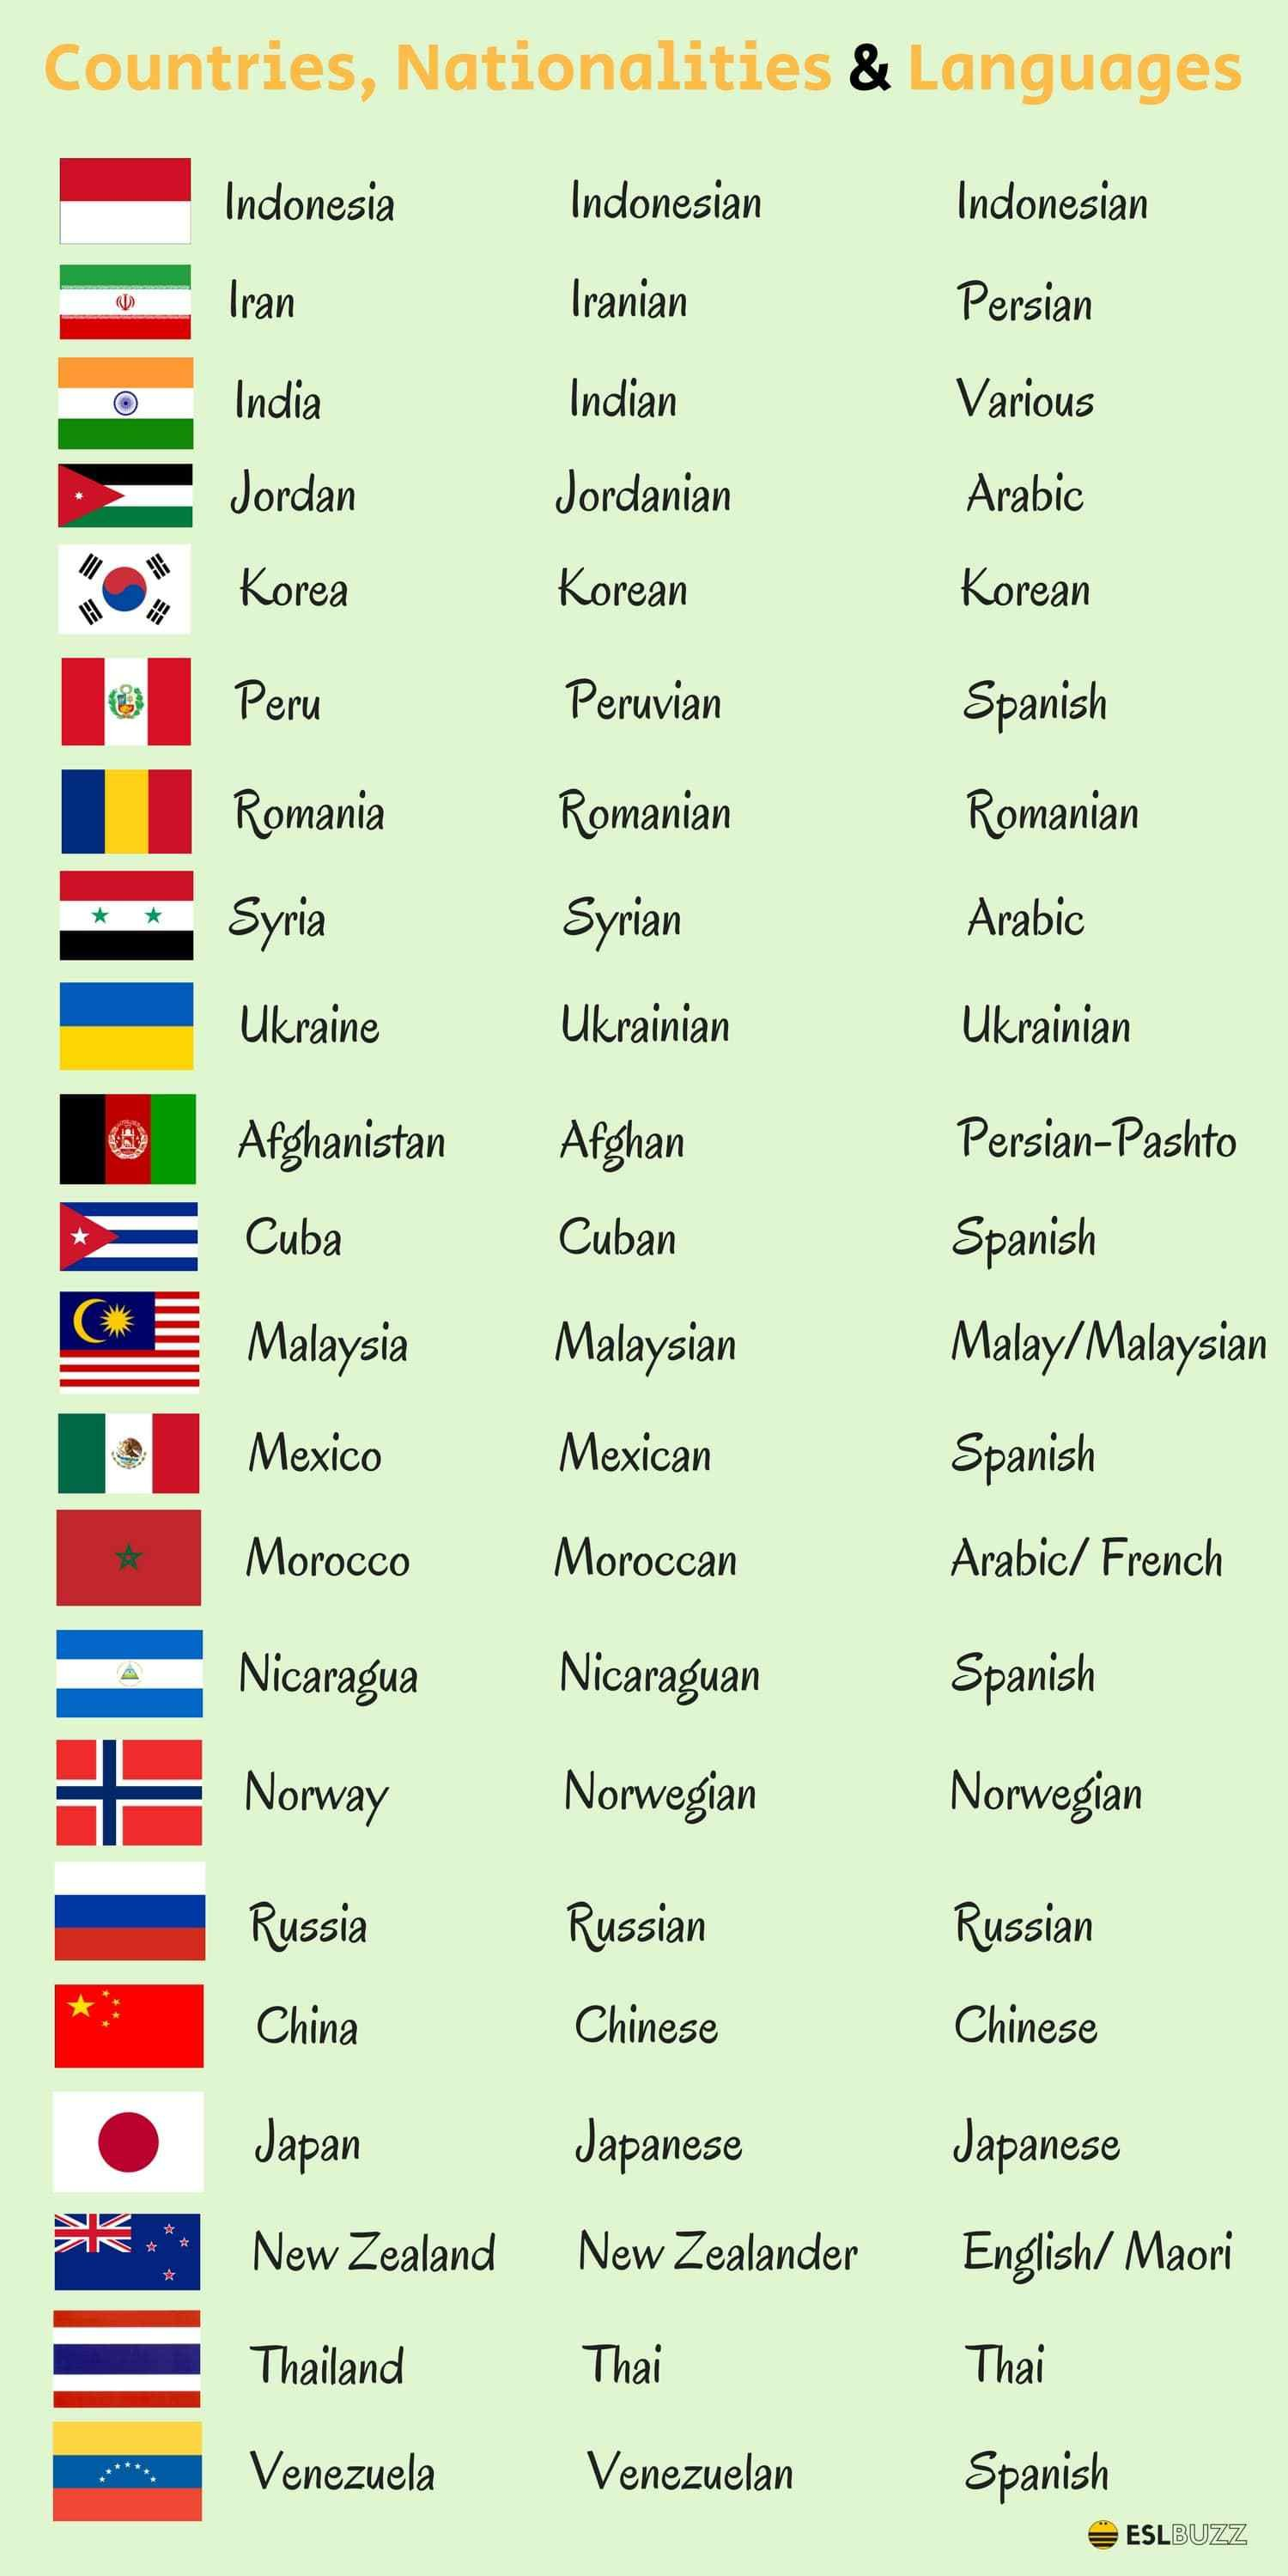 Countries, Nationalities and Languages in English